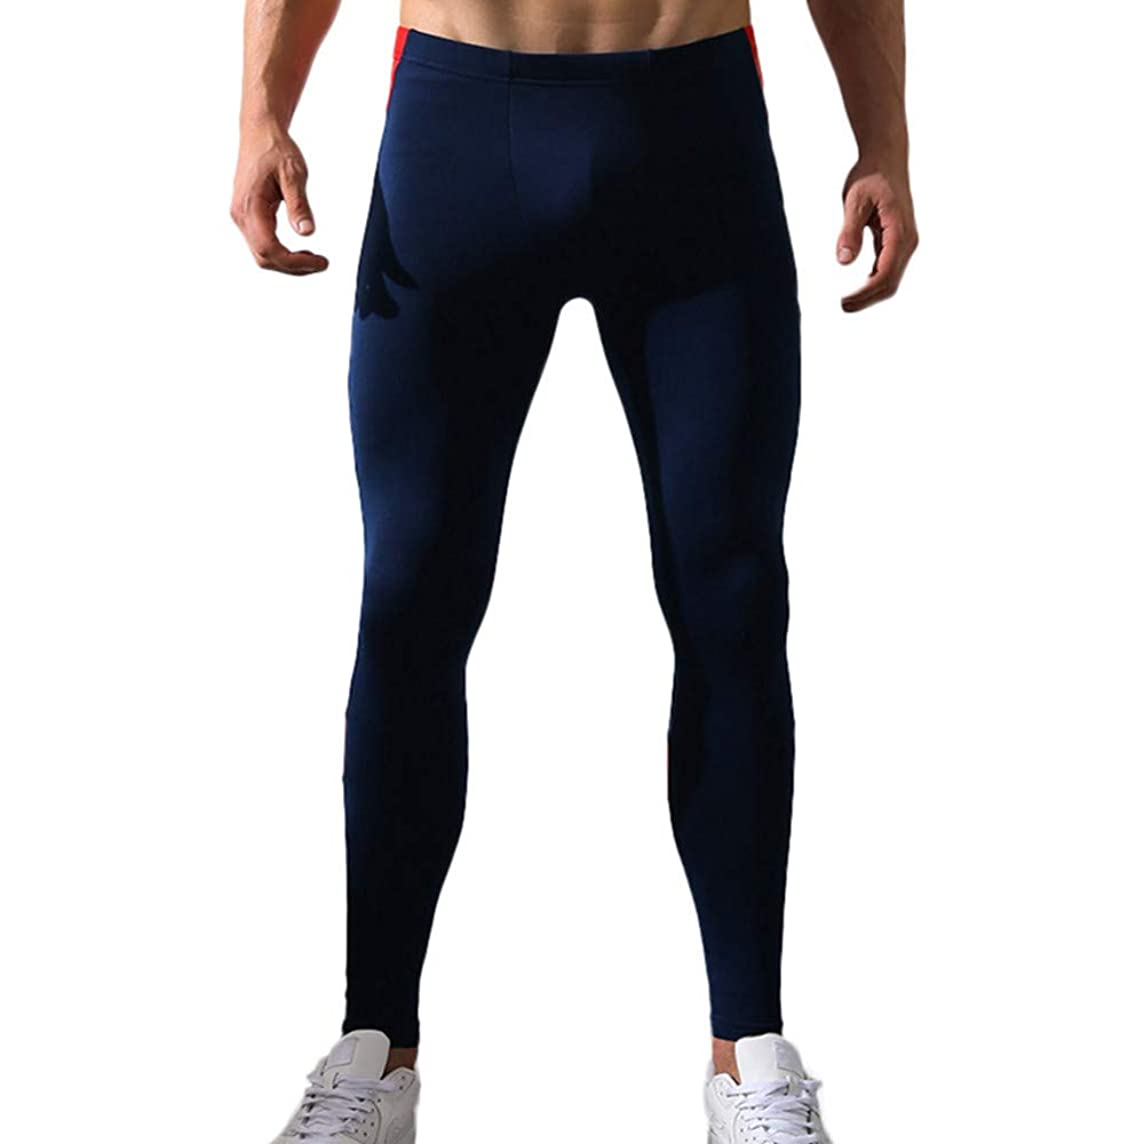 Most Wished! Teresamoon Men's Print Cotton Breathable Sports Leggings Thermal Long Johns Underwear Pants